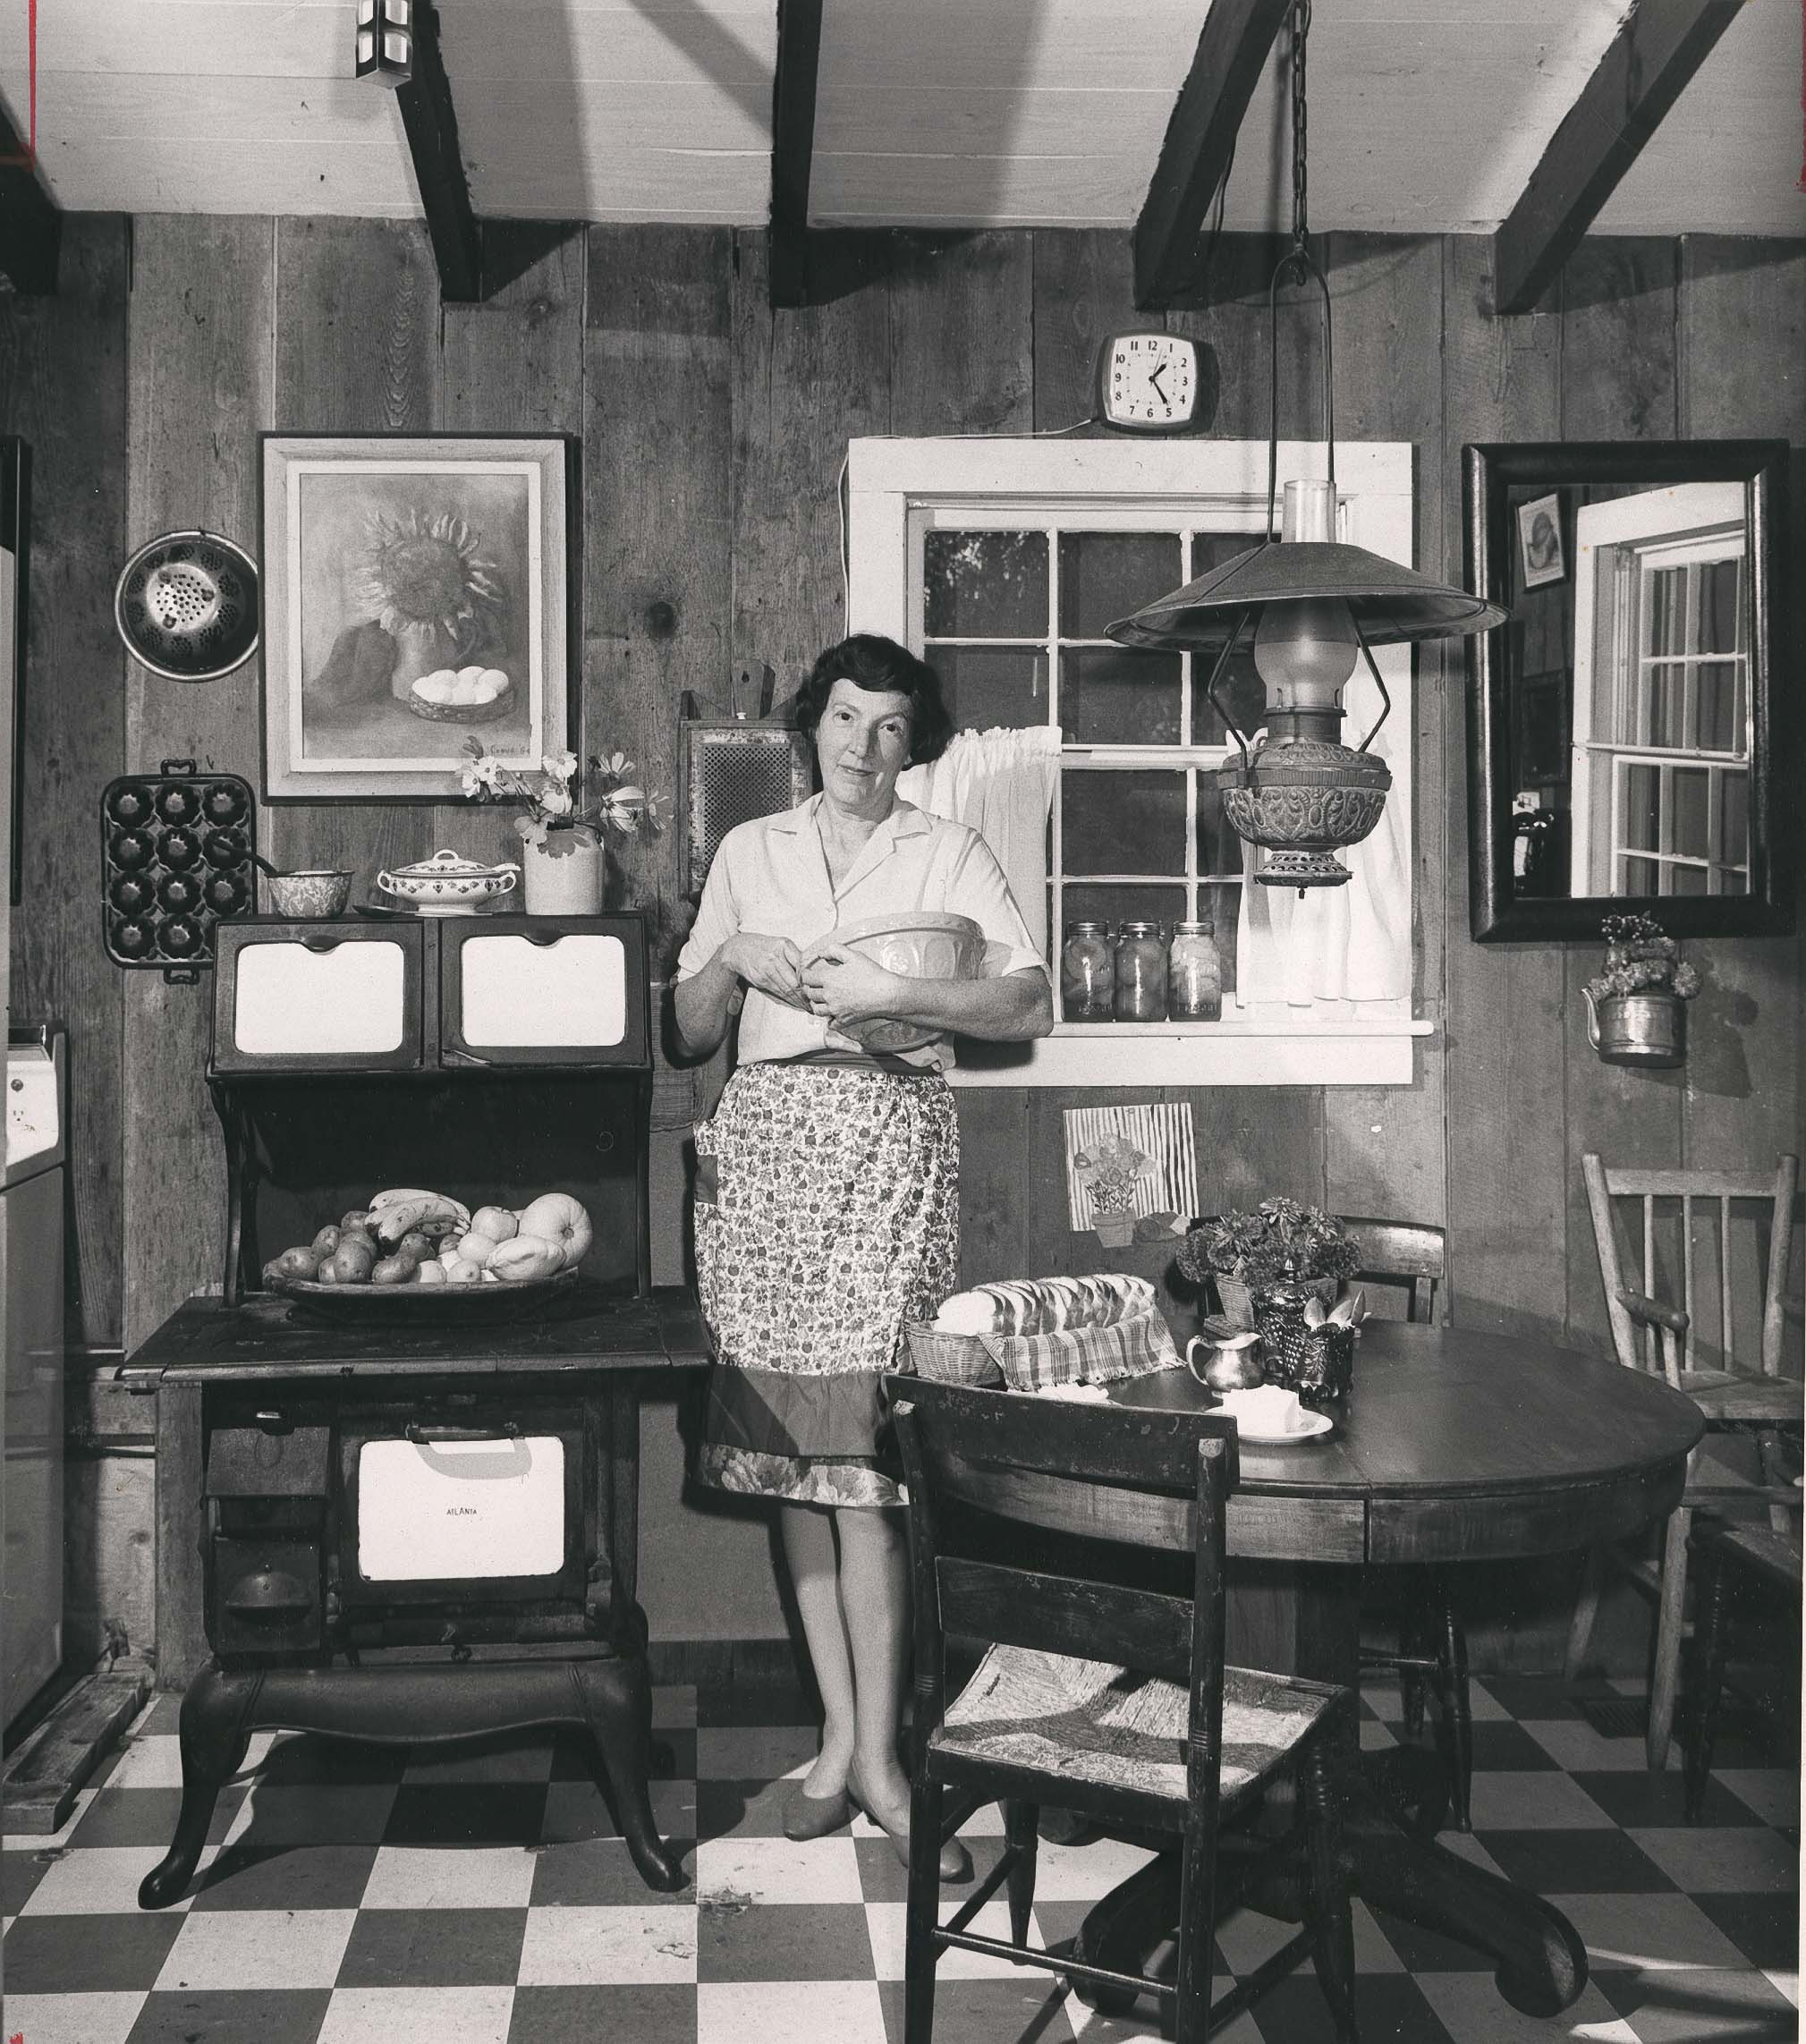 Celestine Sibley stands in a kitchen with a bowl in her hand.